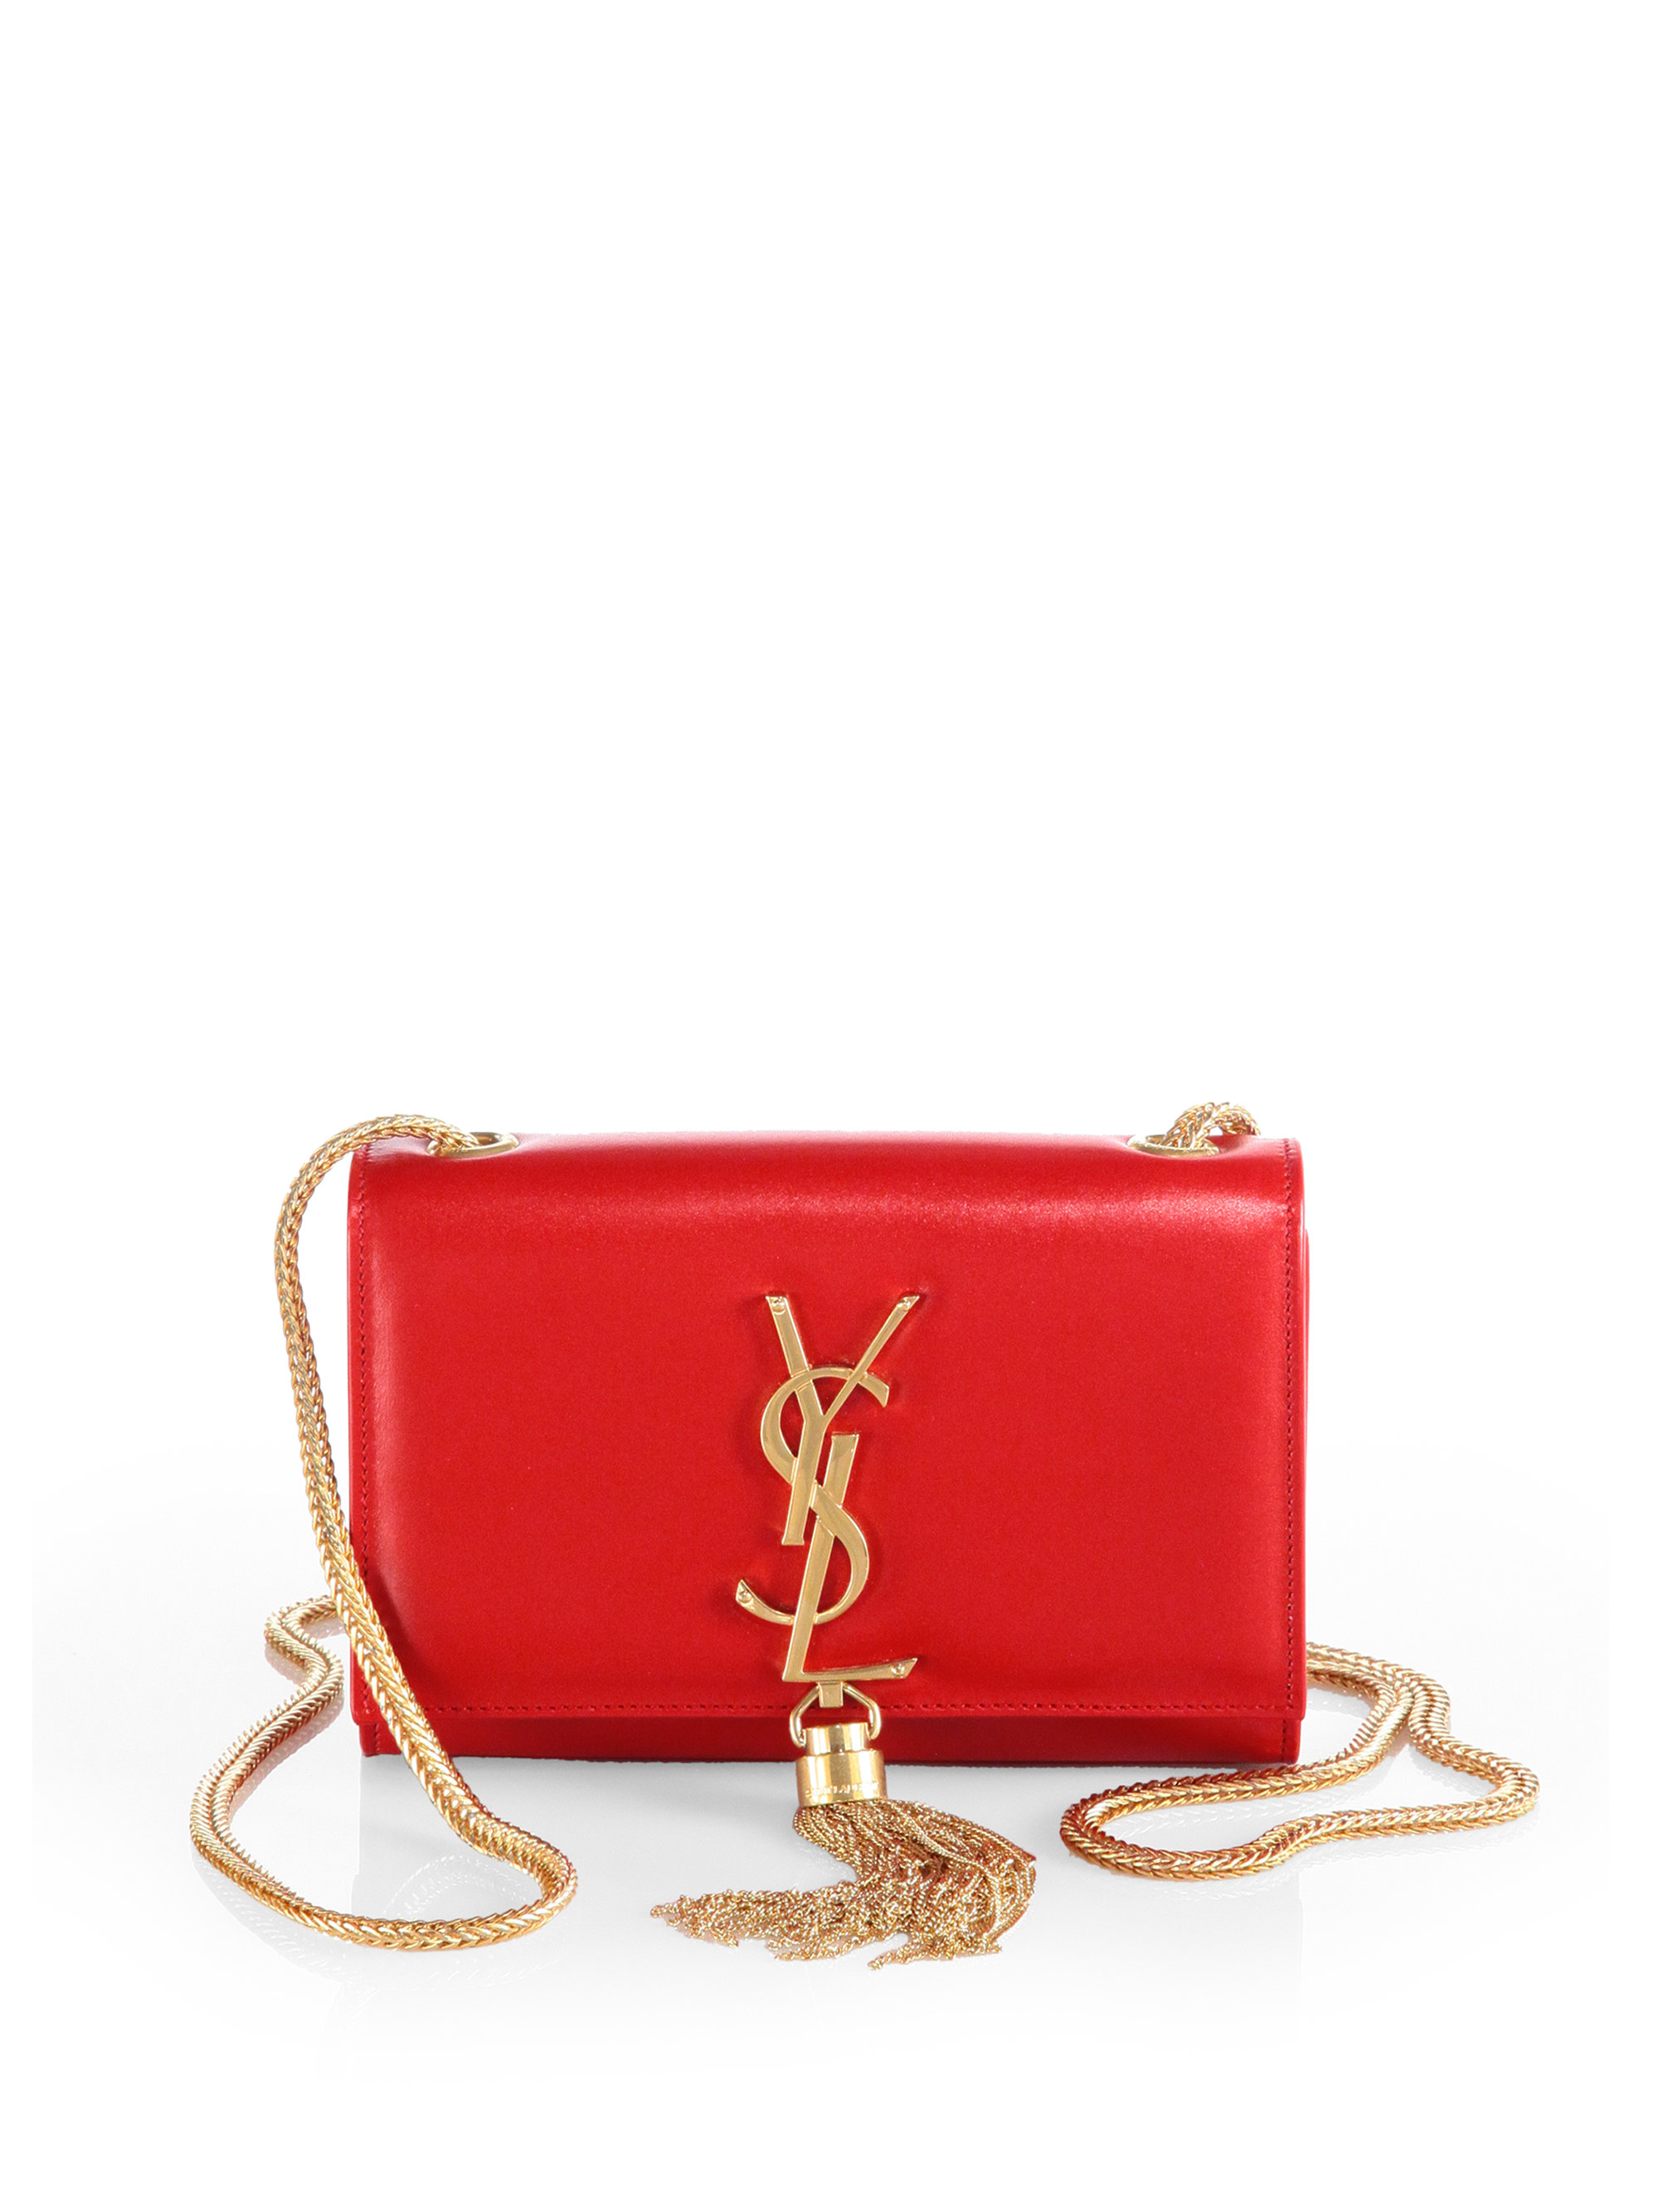 Yves Saint Laurent Medium Red Chyc Shoulder Bag Yves